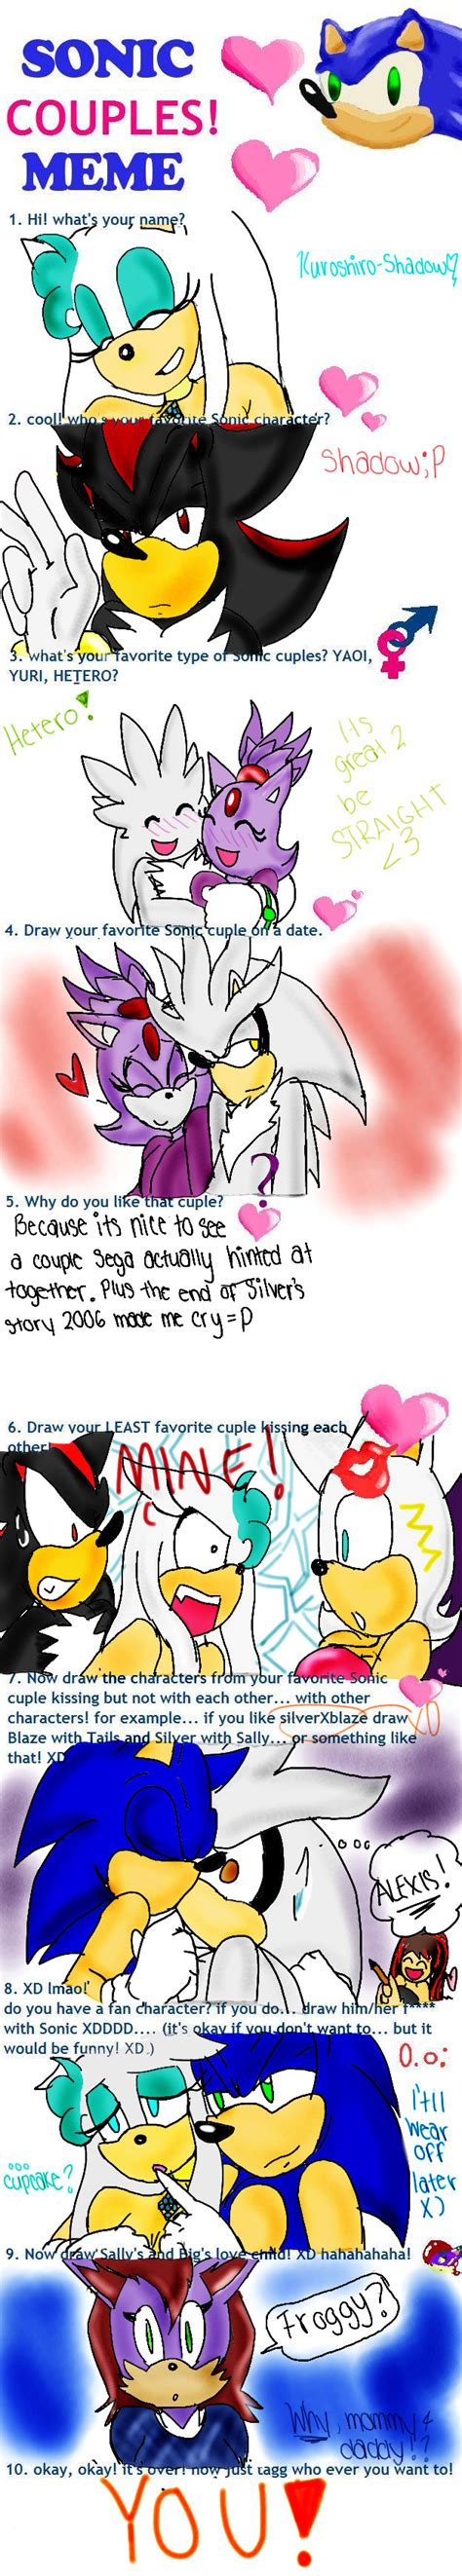 Sonic Couples Meme - sonic couples meme by kuroshiro shadow on deviantart